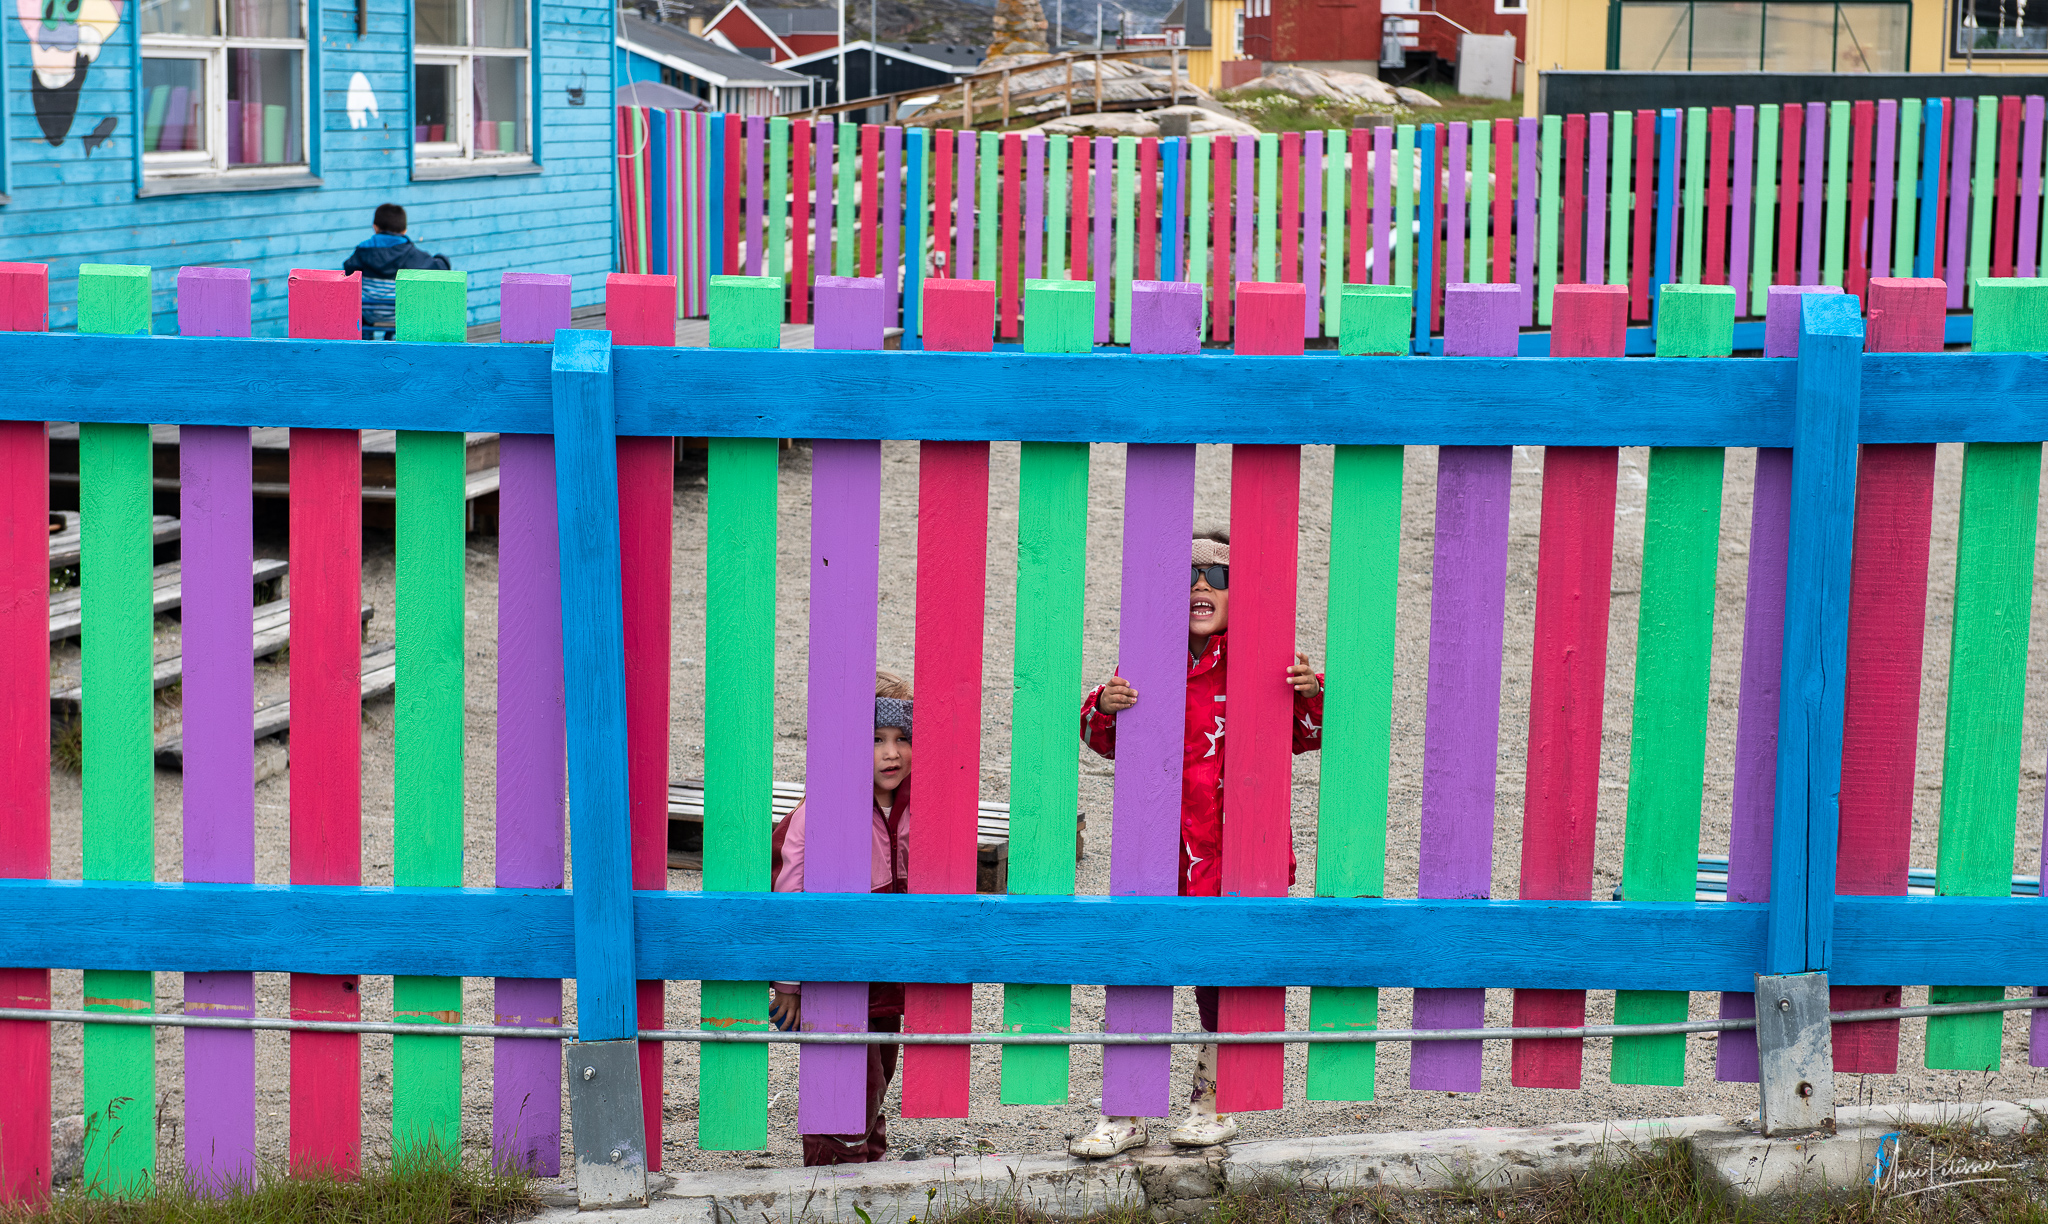 The colored school, Greenland